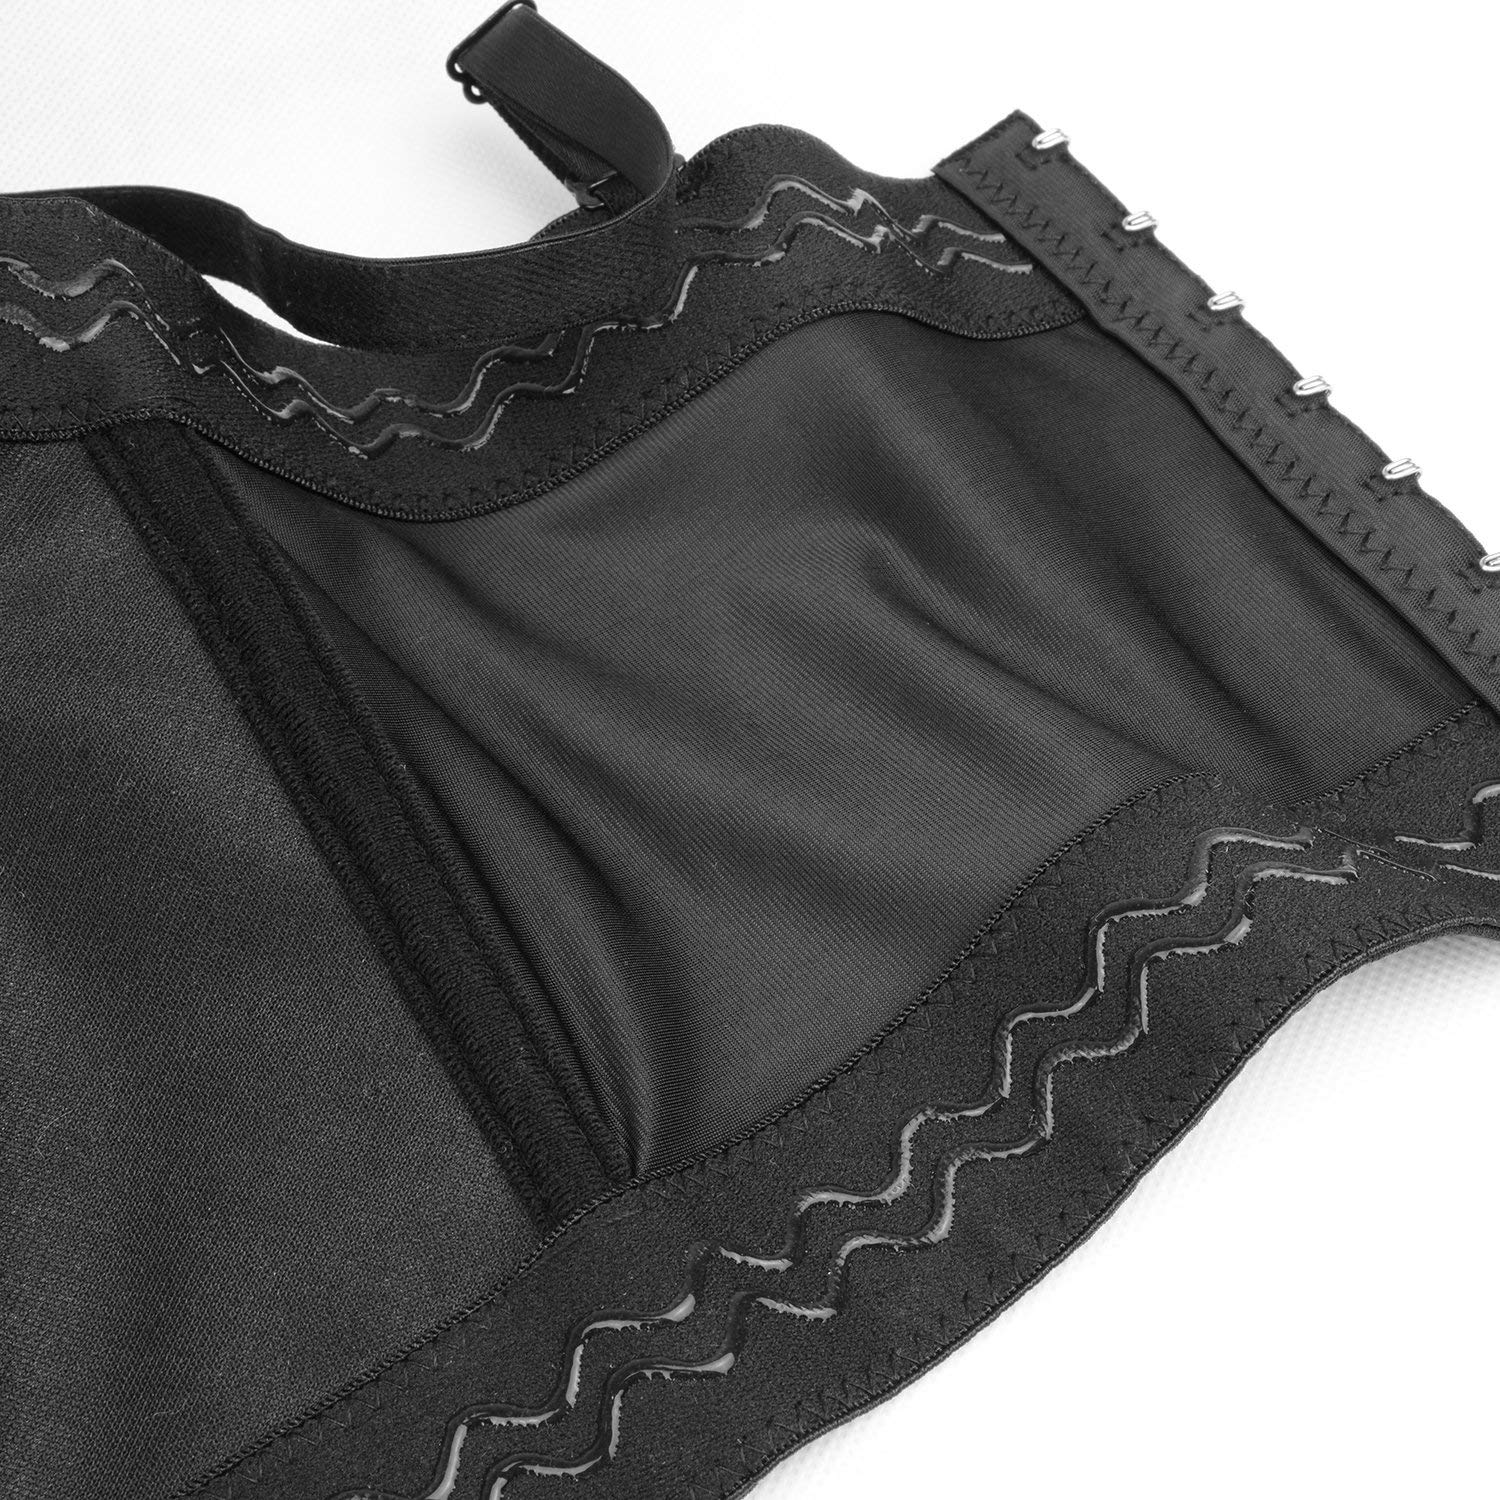 a903e6e163a Amazon.com  ELLACCI Sexy Star PU Leather Bustier Crop Top Gothic Punk Push  Up Women s Corset Top Bra Black X-Small  Clothing